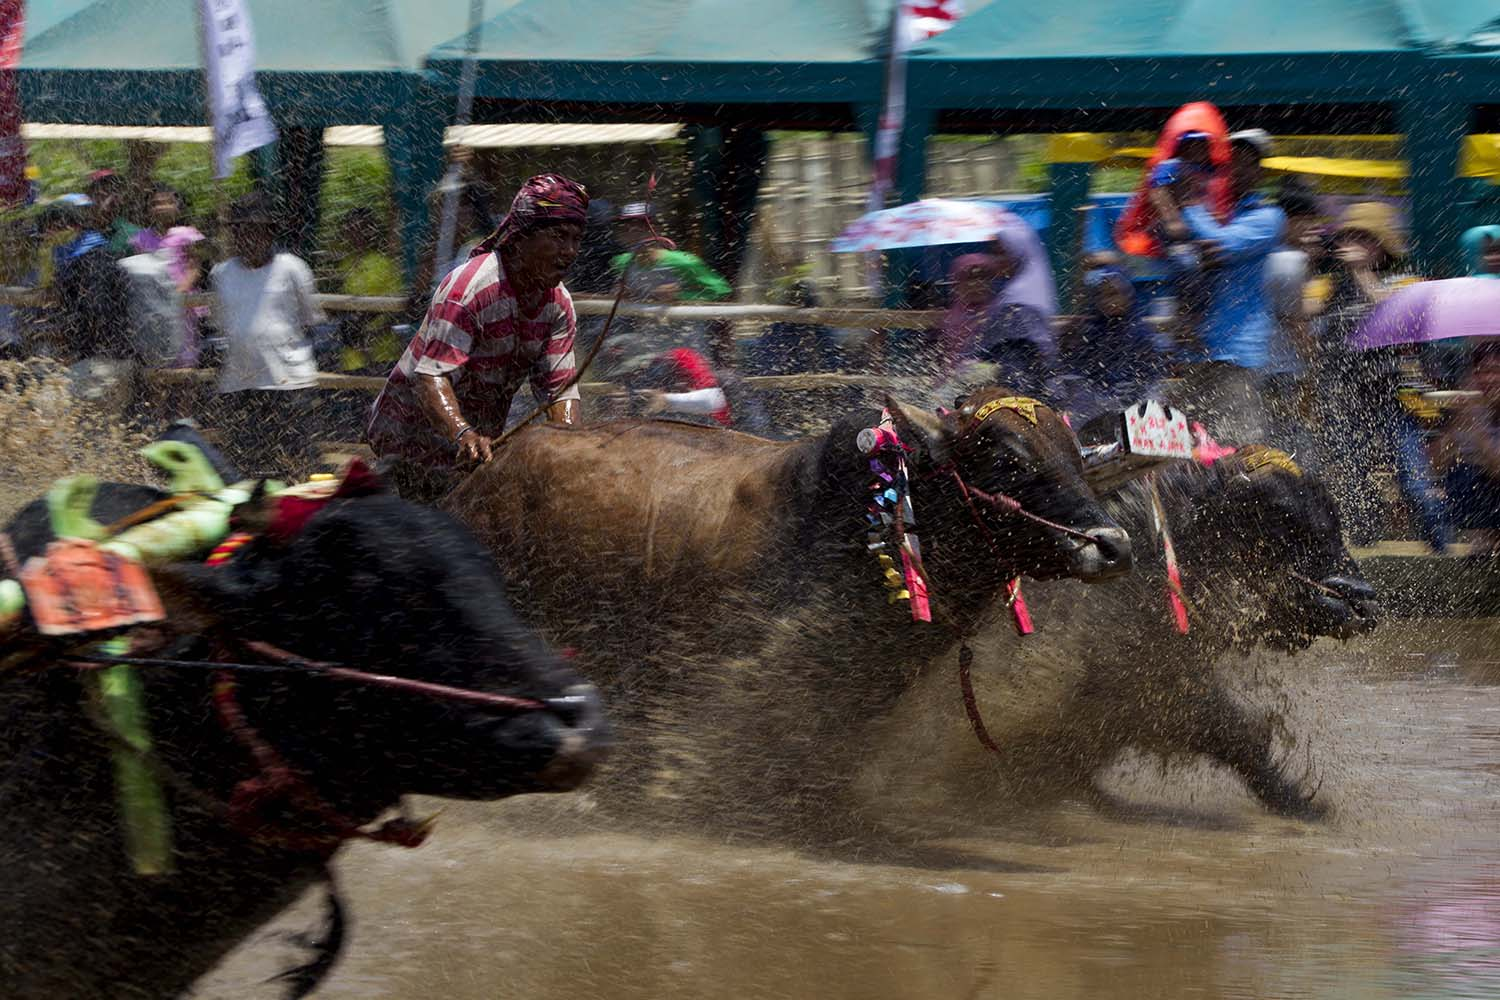 Probolinggo's paddy field bull races more than a sport